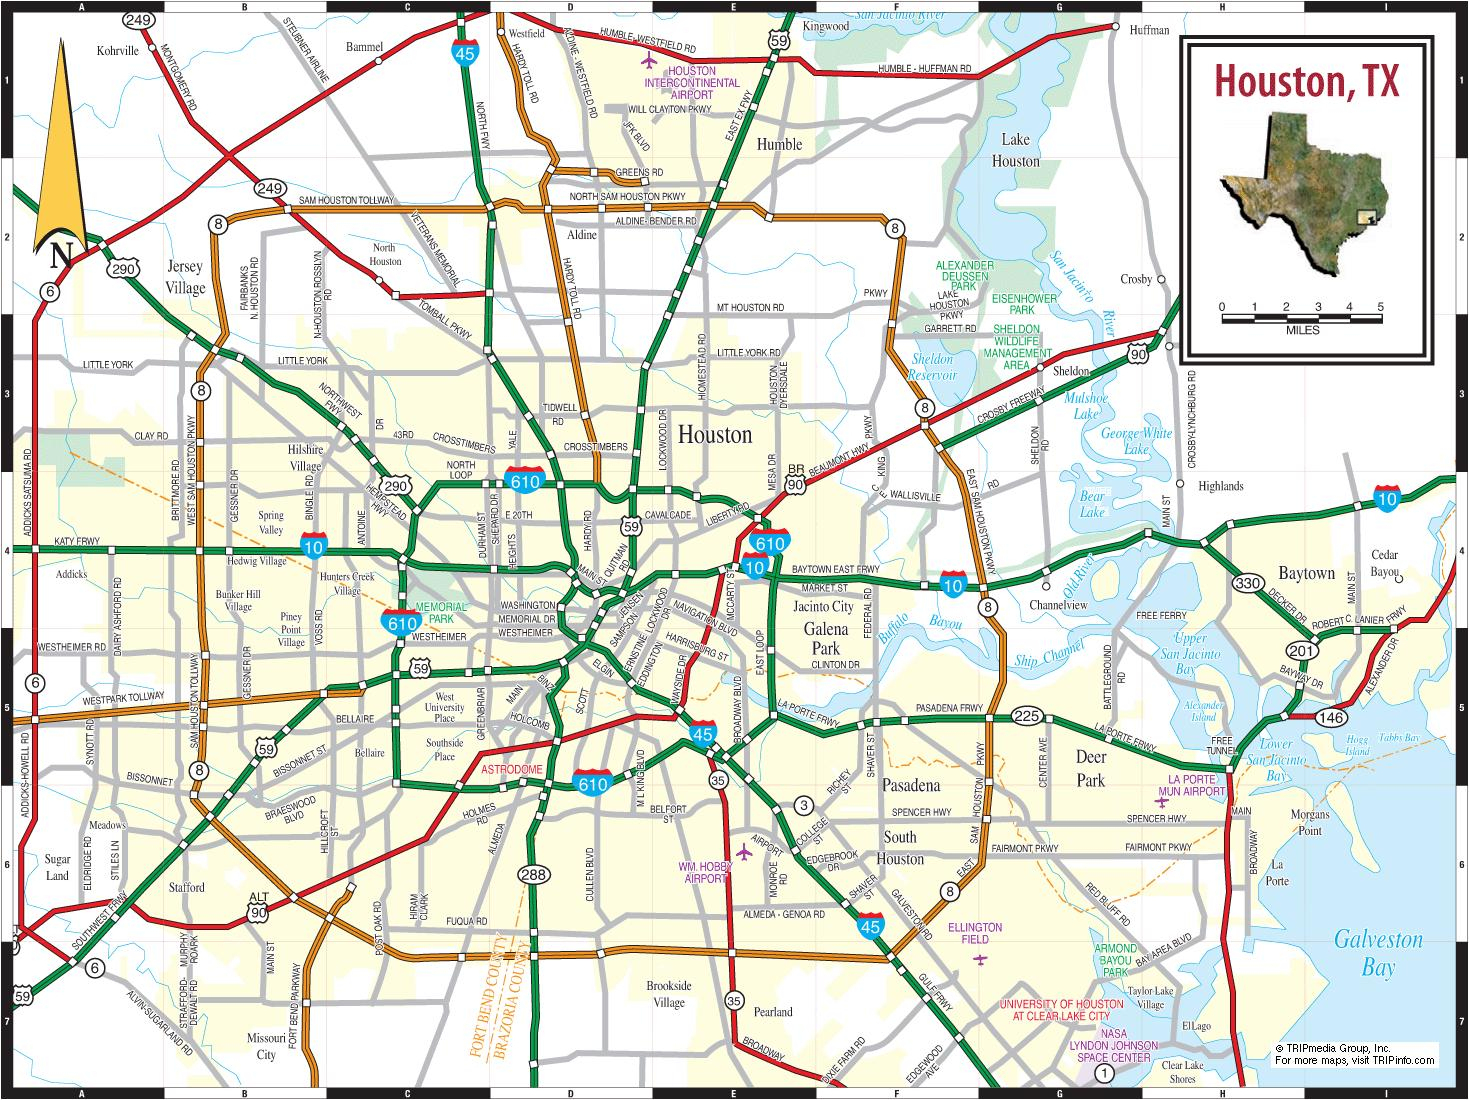 Houston, Texas, Carte - Carte De Houston Au Texas (Texas - Usa) - Map To Houston Texas